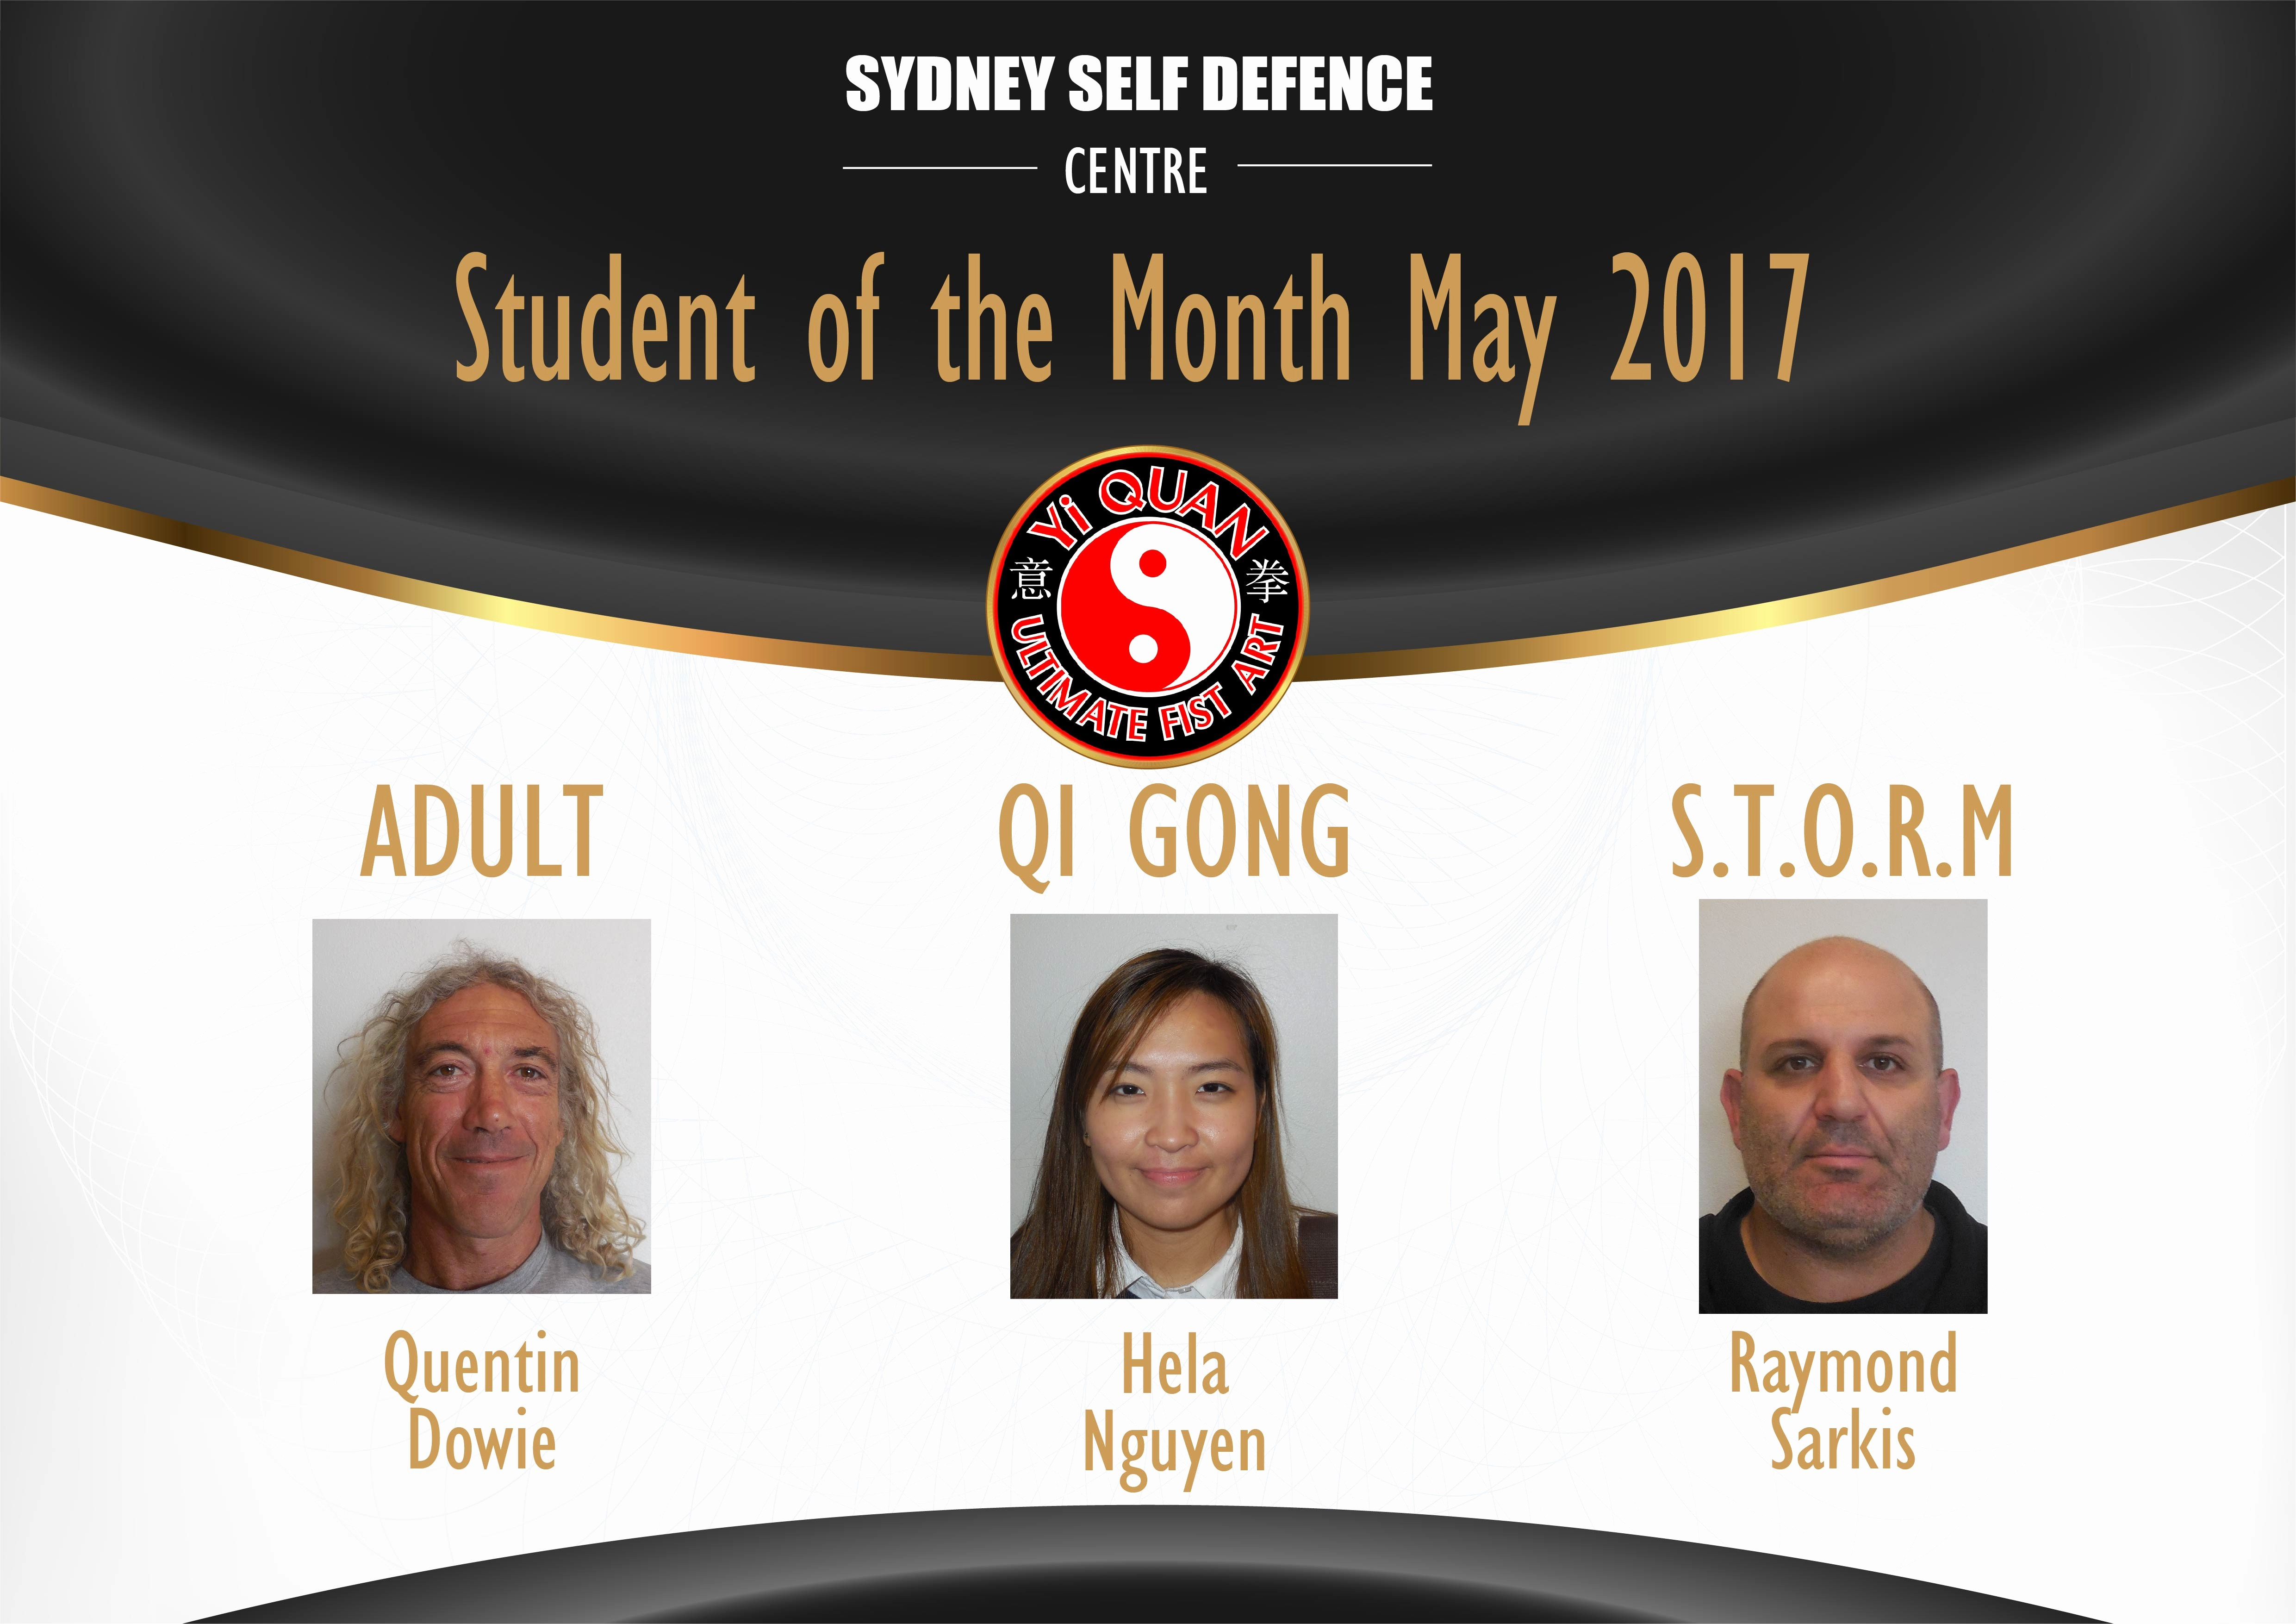 Student Of the Month Banner Fresh Students Of the Month May Sydney Self Defence Centre